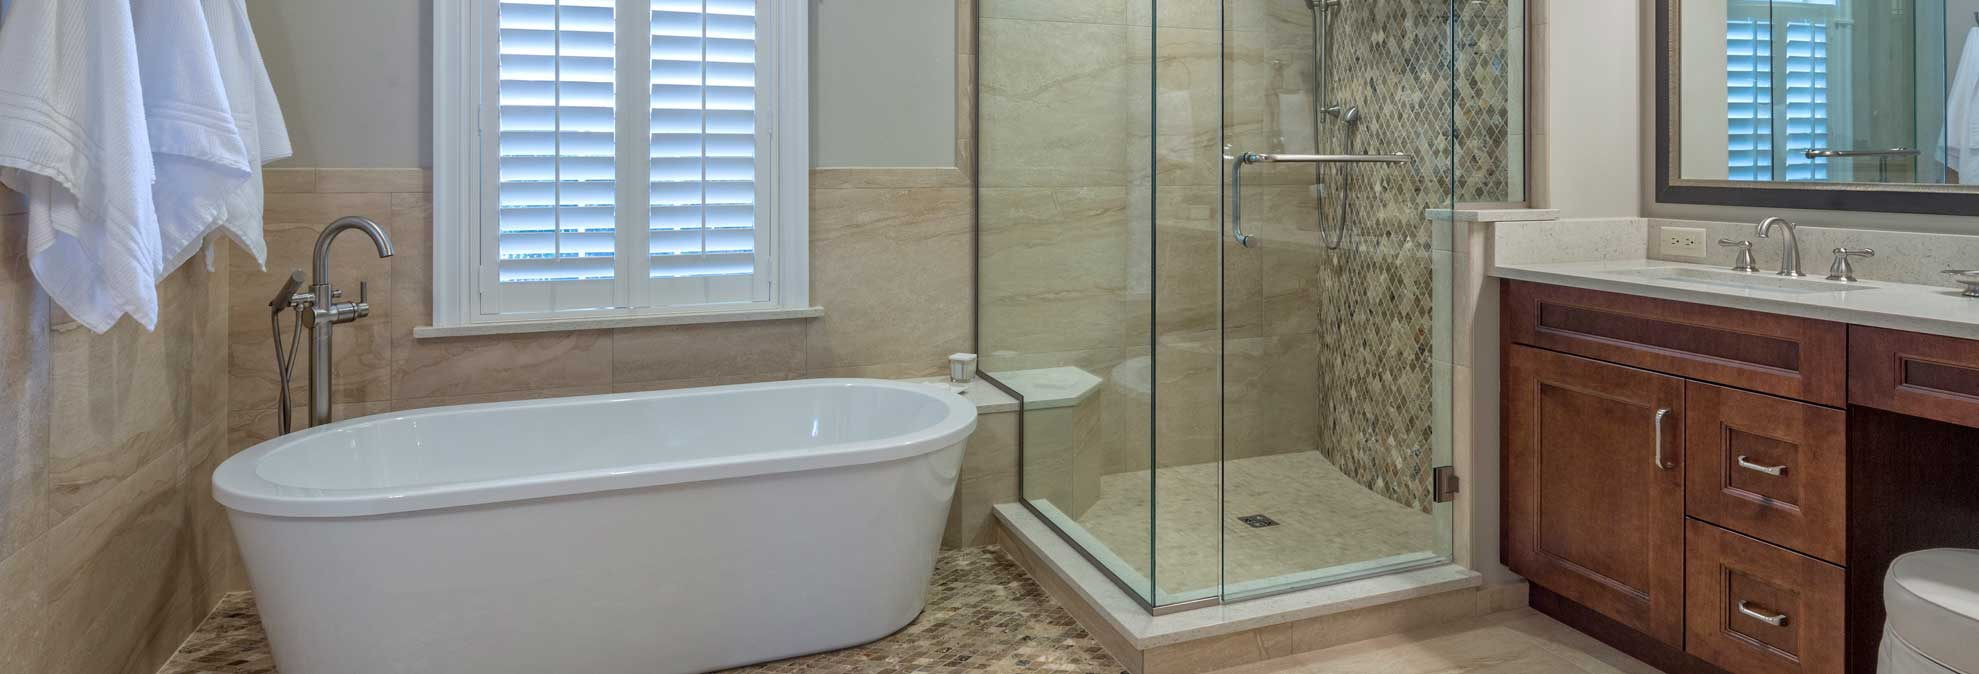 Cleaning Tips To Make Your Bathroom Sparkle Consumer Reports - Bathroom tiles cleaning tips